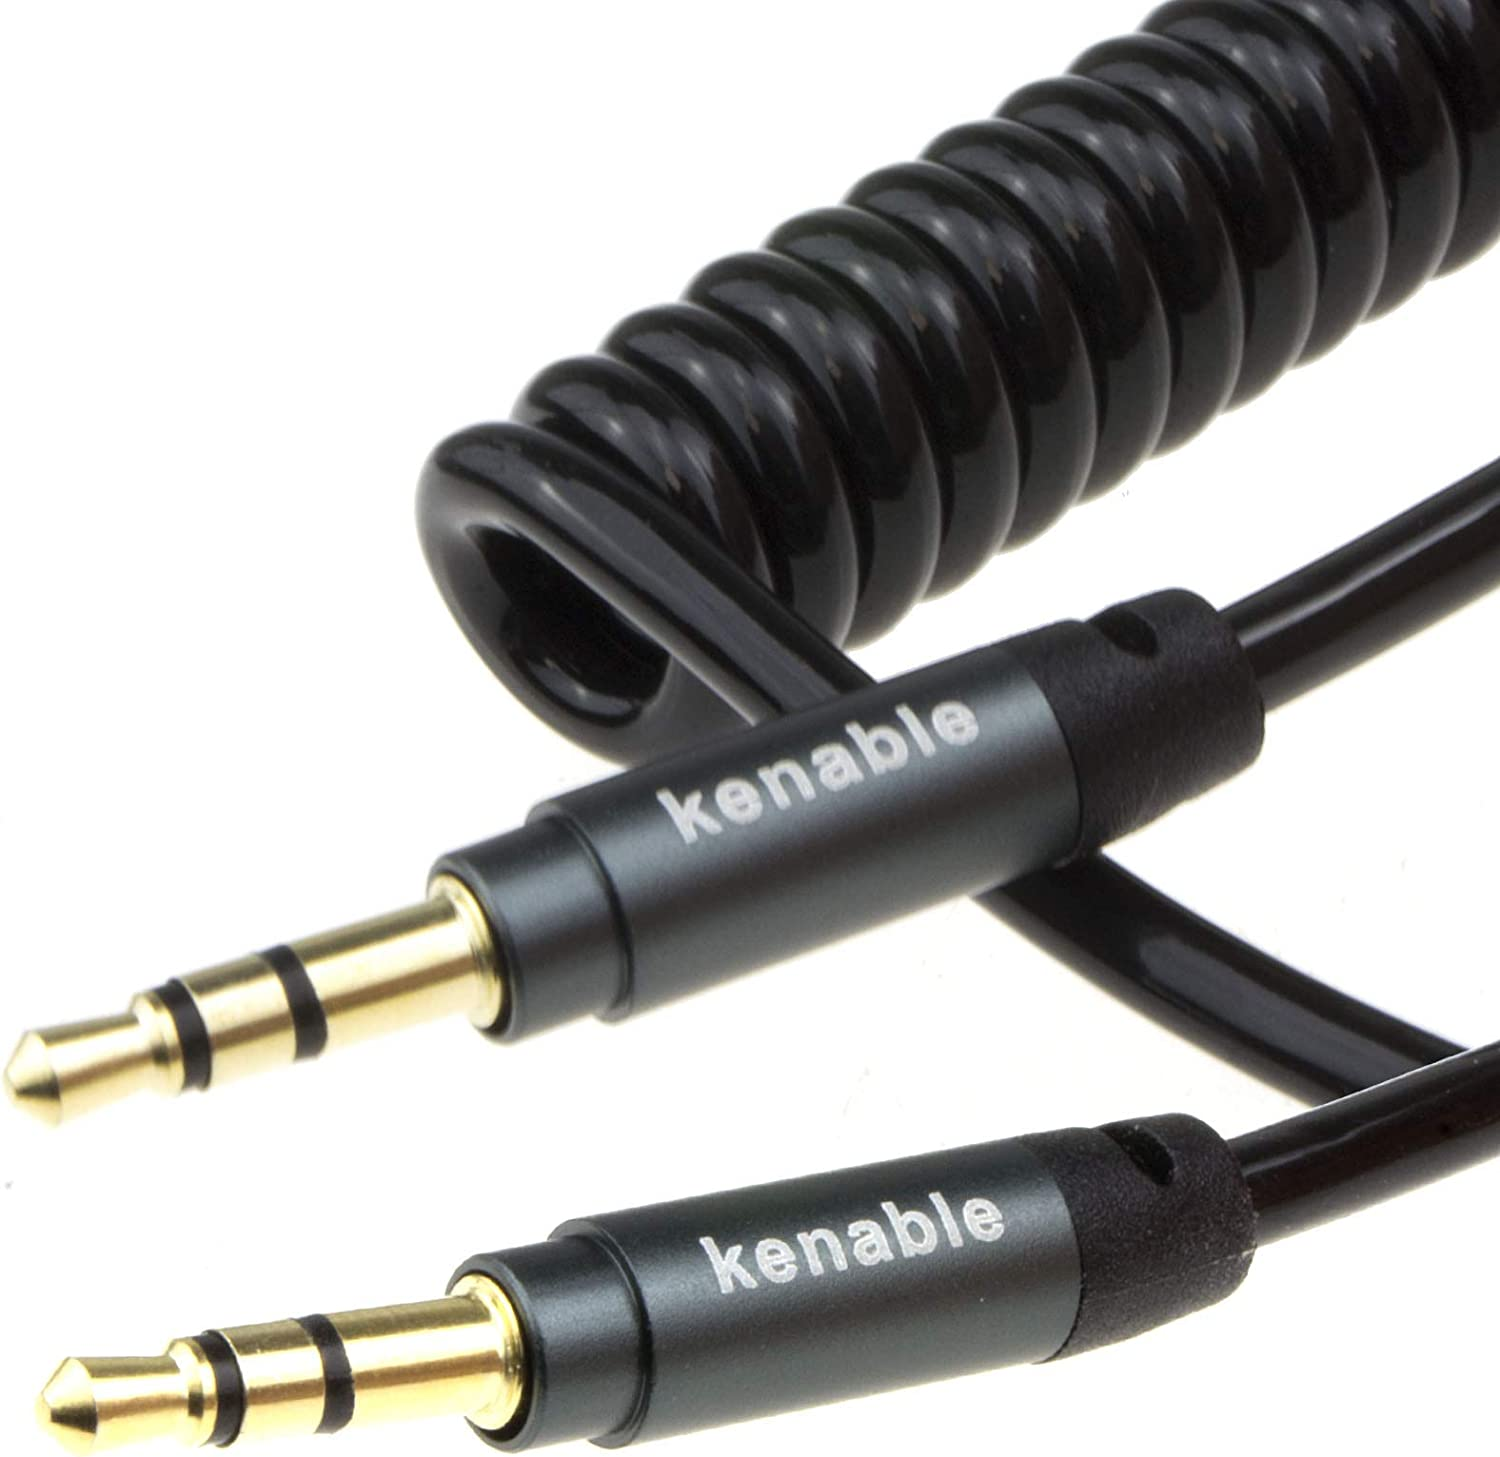 ~6 feet kenable PRO 22AWG Coiled 3.5mm Stereo Jack Cable AUX Headphone Lead 2m Gold